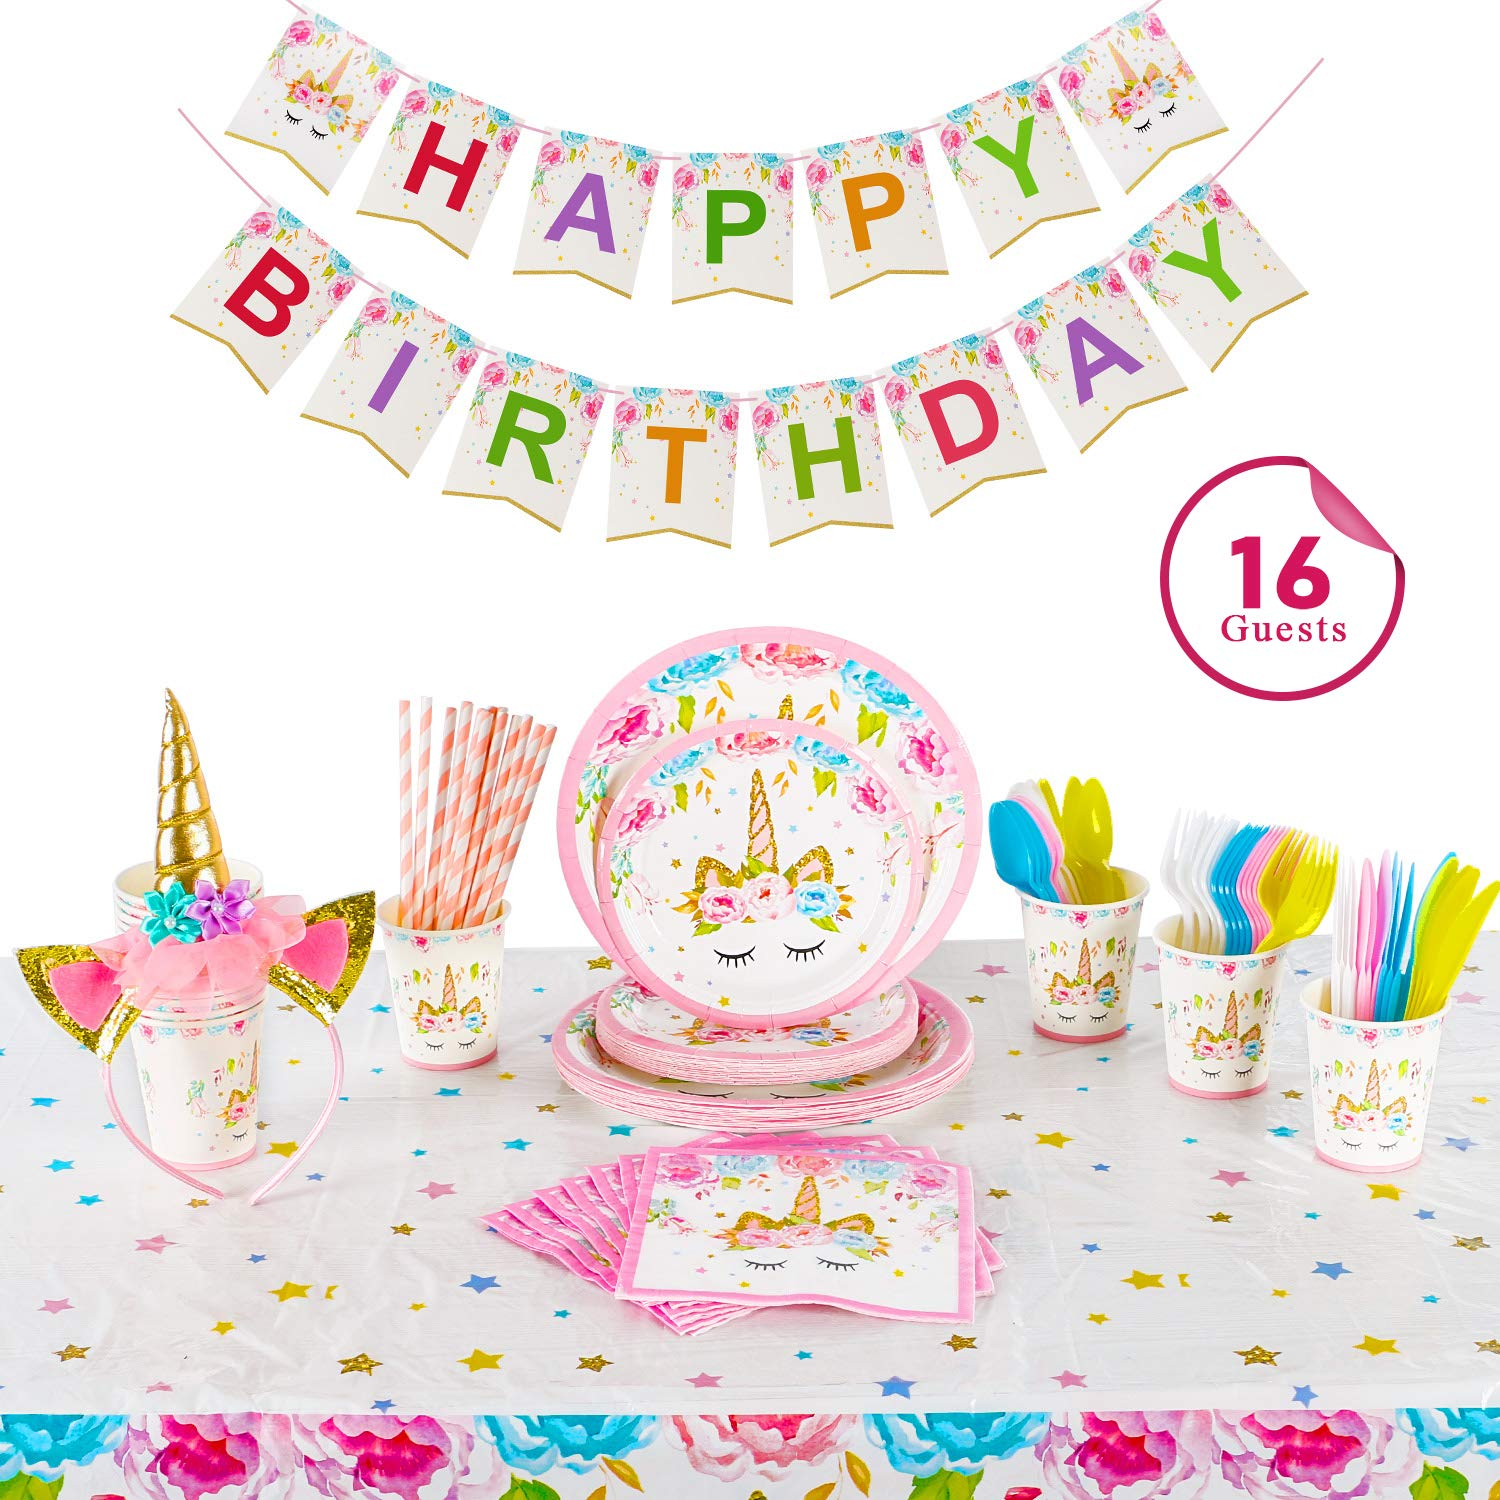 Clearance Sale ! Party Supplier Serves 16, Birthday Decoration Kits for Girls | Headband | Napkins | Plates | Cups | Straws | Table Cloth | Utensils | Happy Birthday Banner by Alyoen by Alyoen